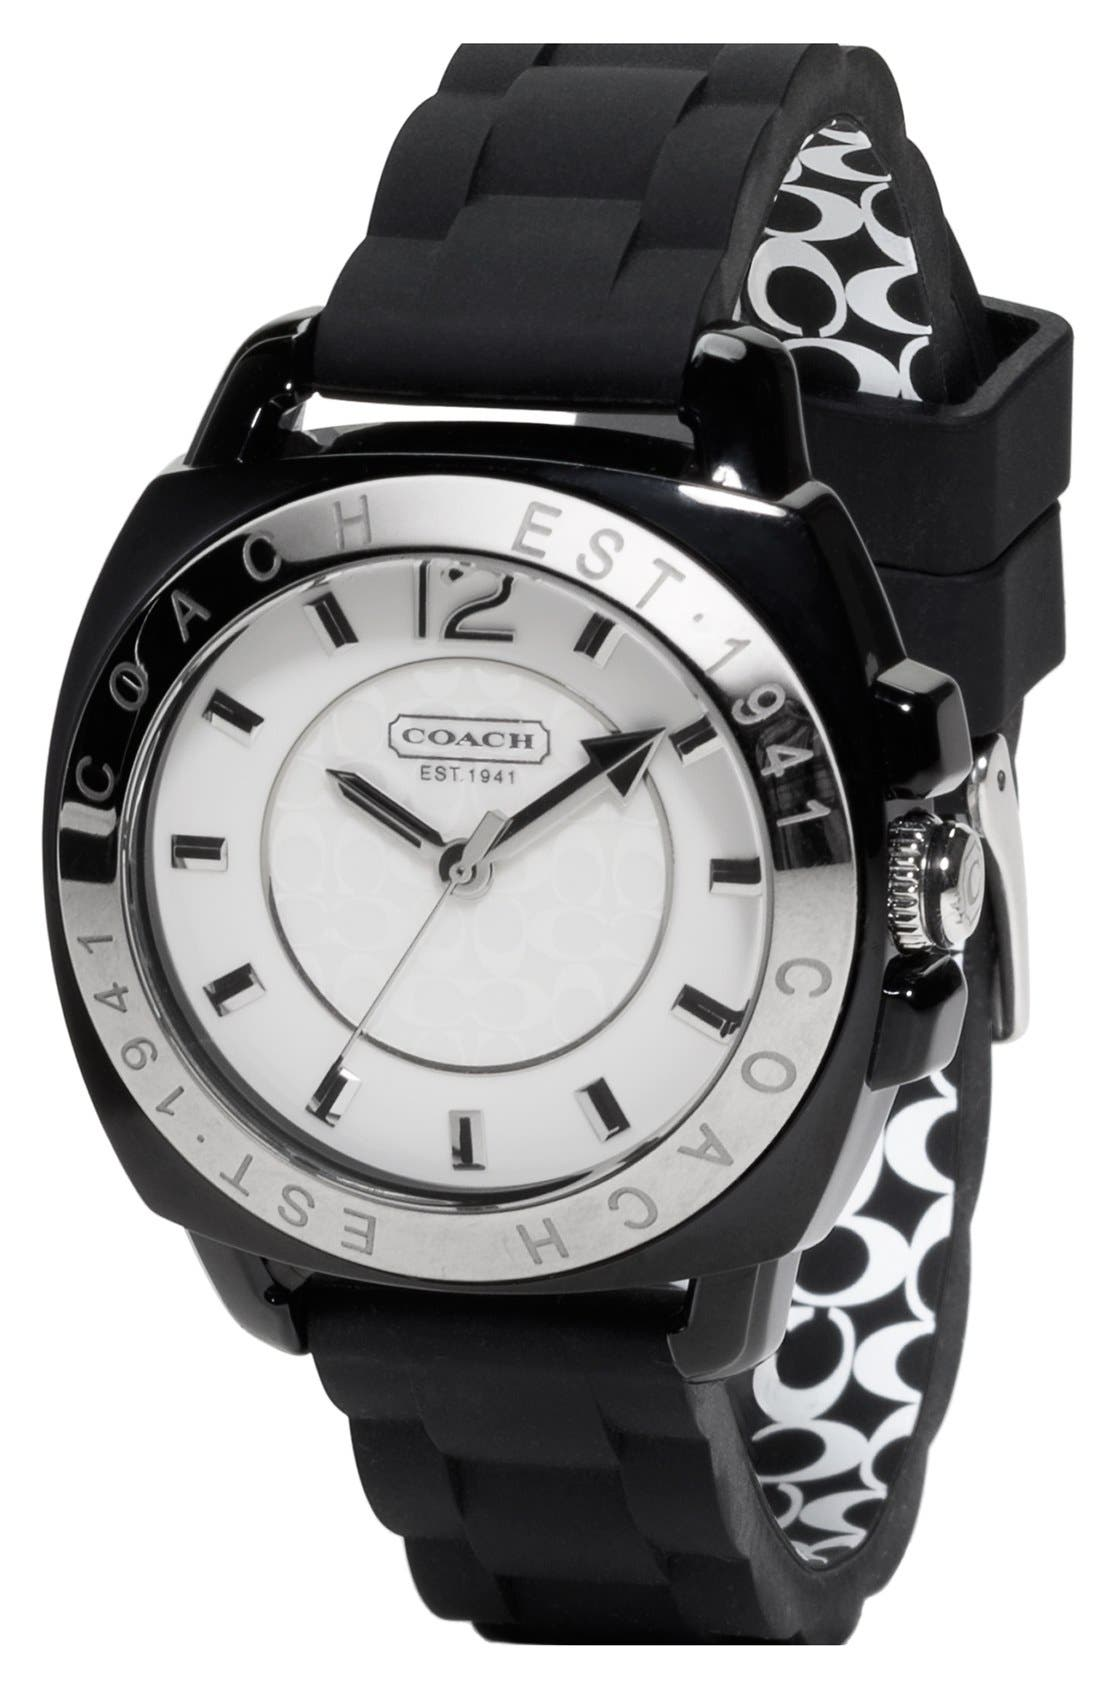 Main Image - COACH 'Boyfriend' Rubber Strap Watch, 38mm